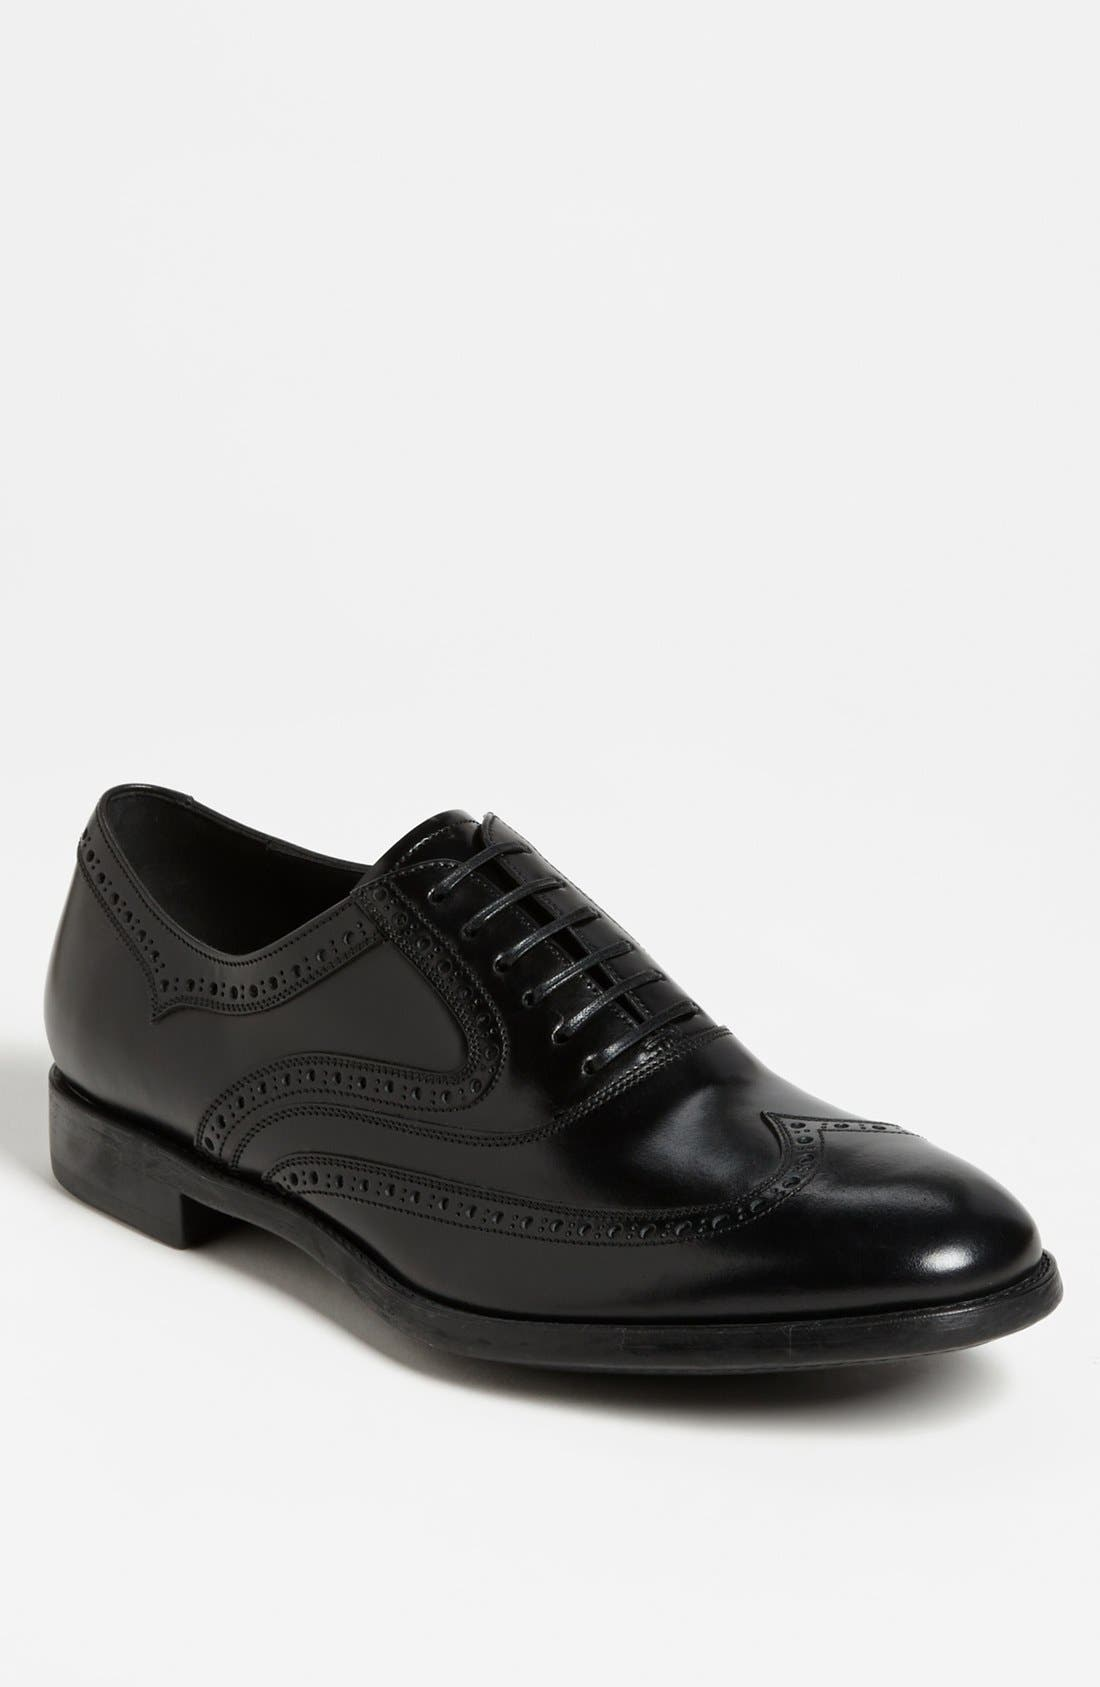 Alternate Image 1 Selected - Salvatore Ferragamo 'Sinesio' Wingtip